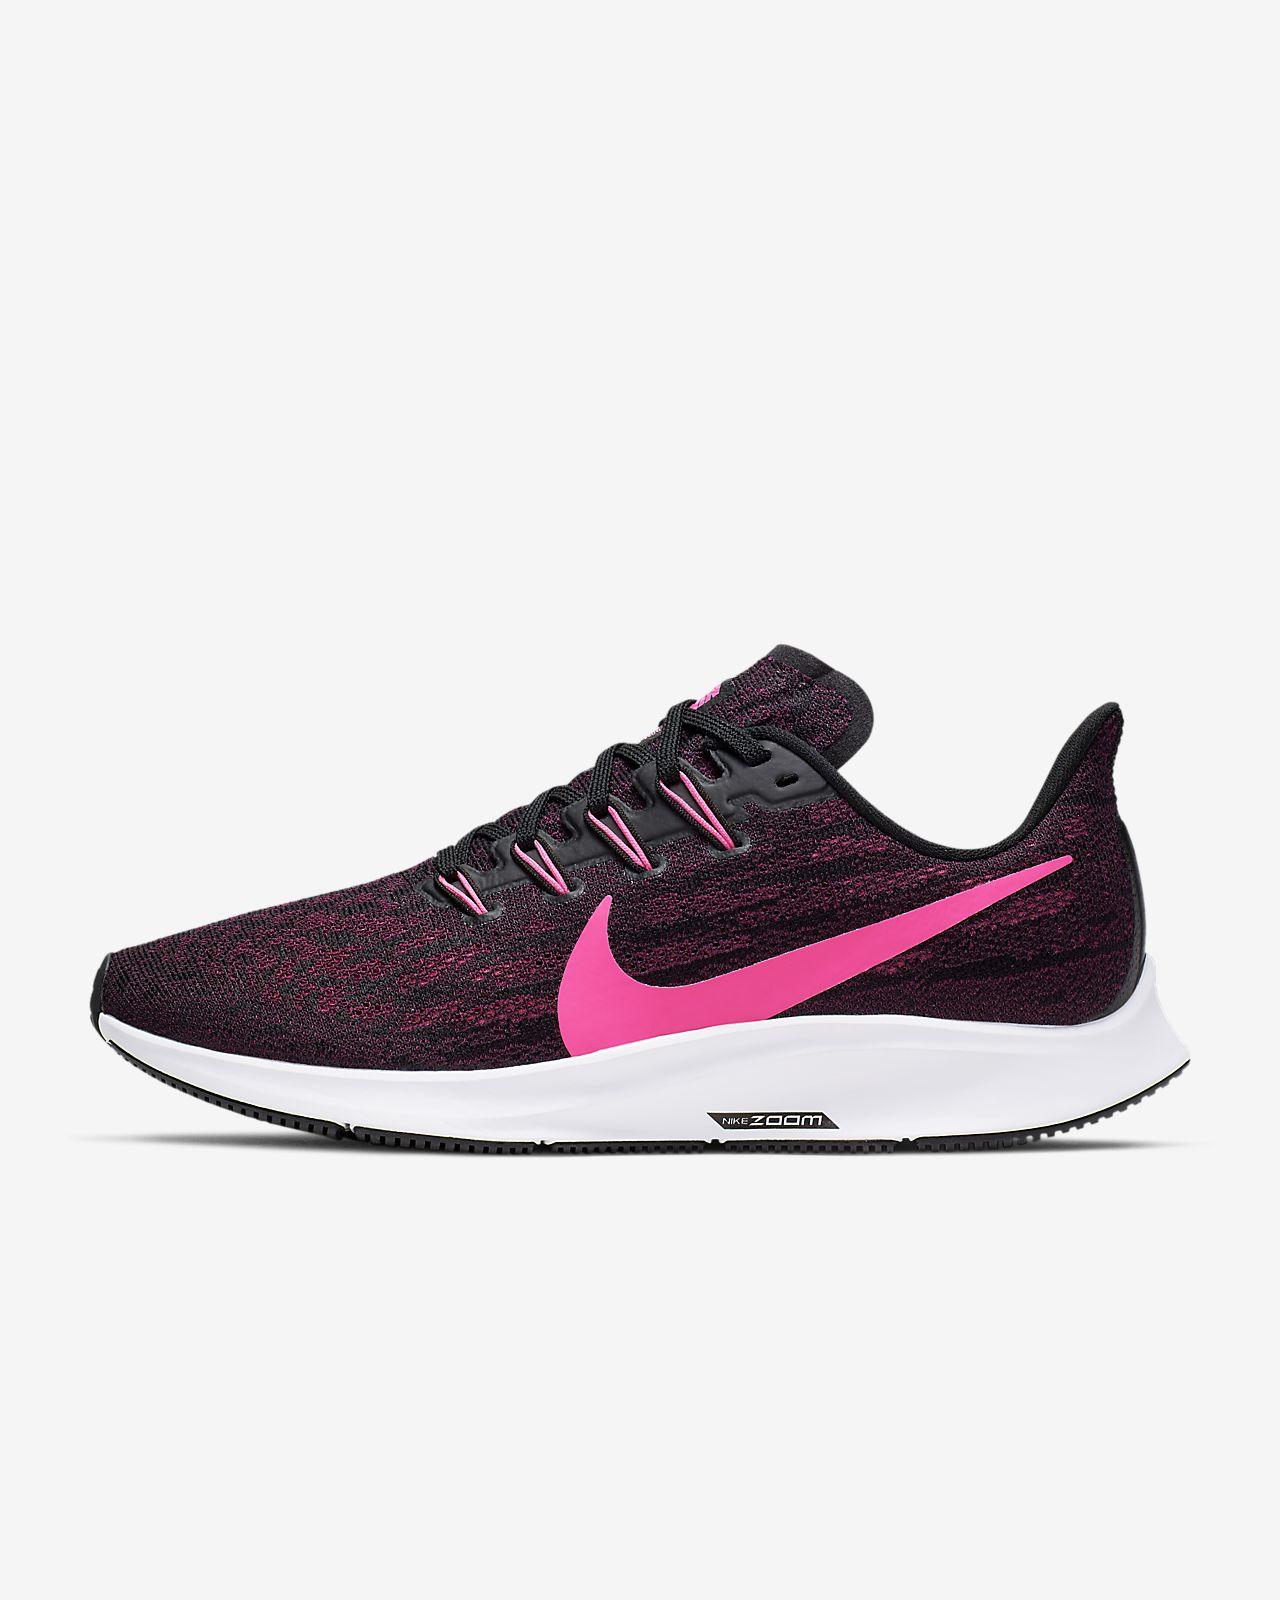 Best Neon Nike Womens Trainers of 2020 Top Rated & Reviewed